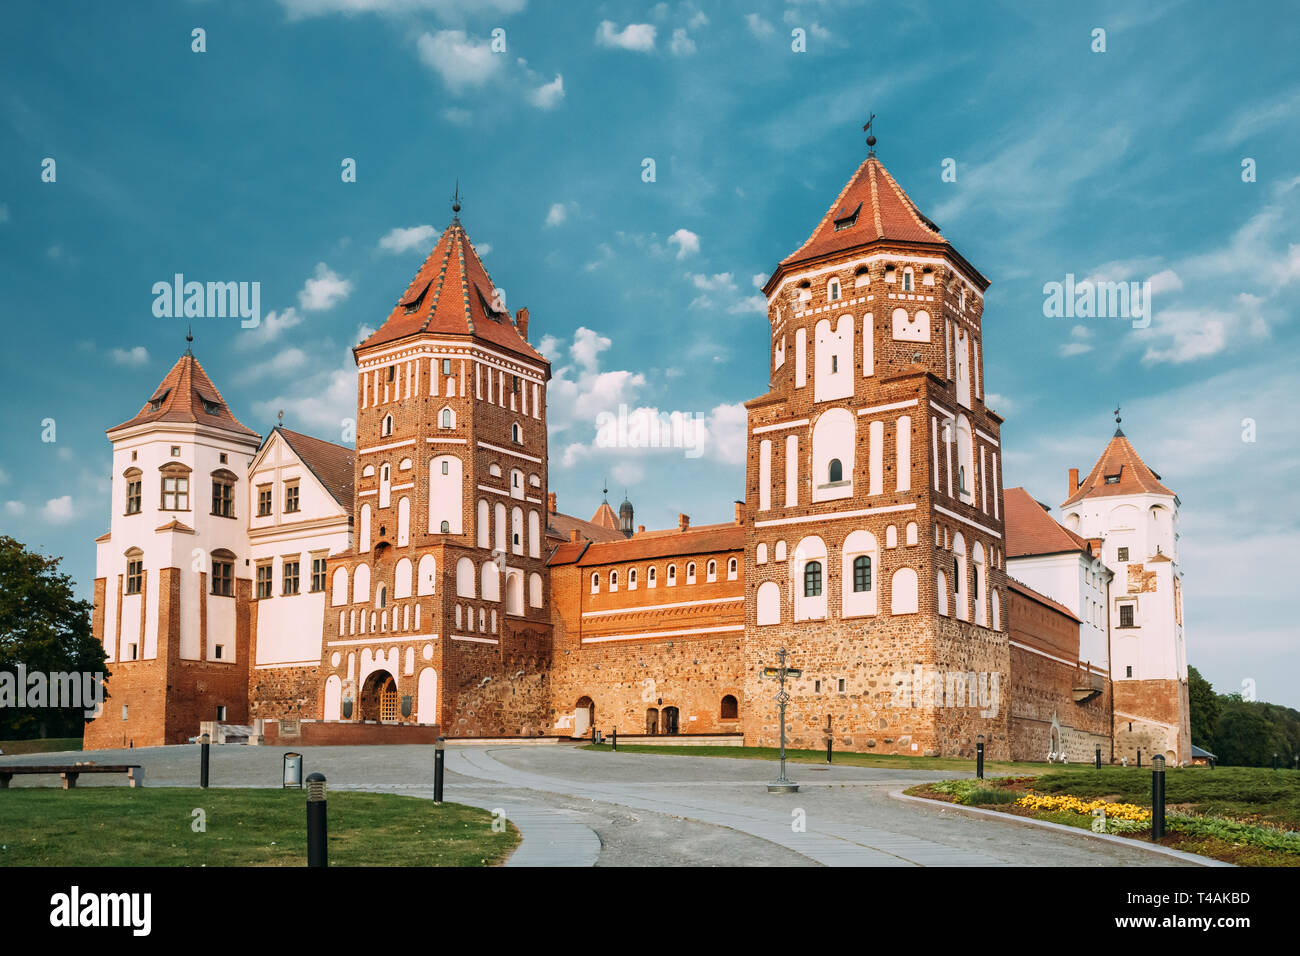 Mir, Belarus. Mir Castle Complex. Architectural Ensemble Of Feudalism, Cultural Monument, UNESCO Heritage. Famous Landmark In Summer. - Stock Image